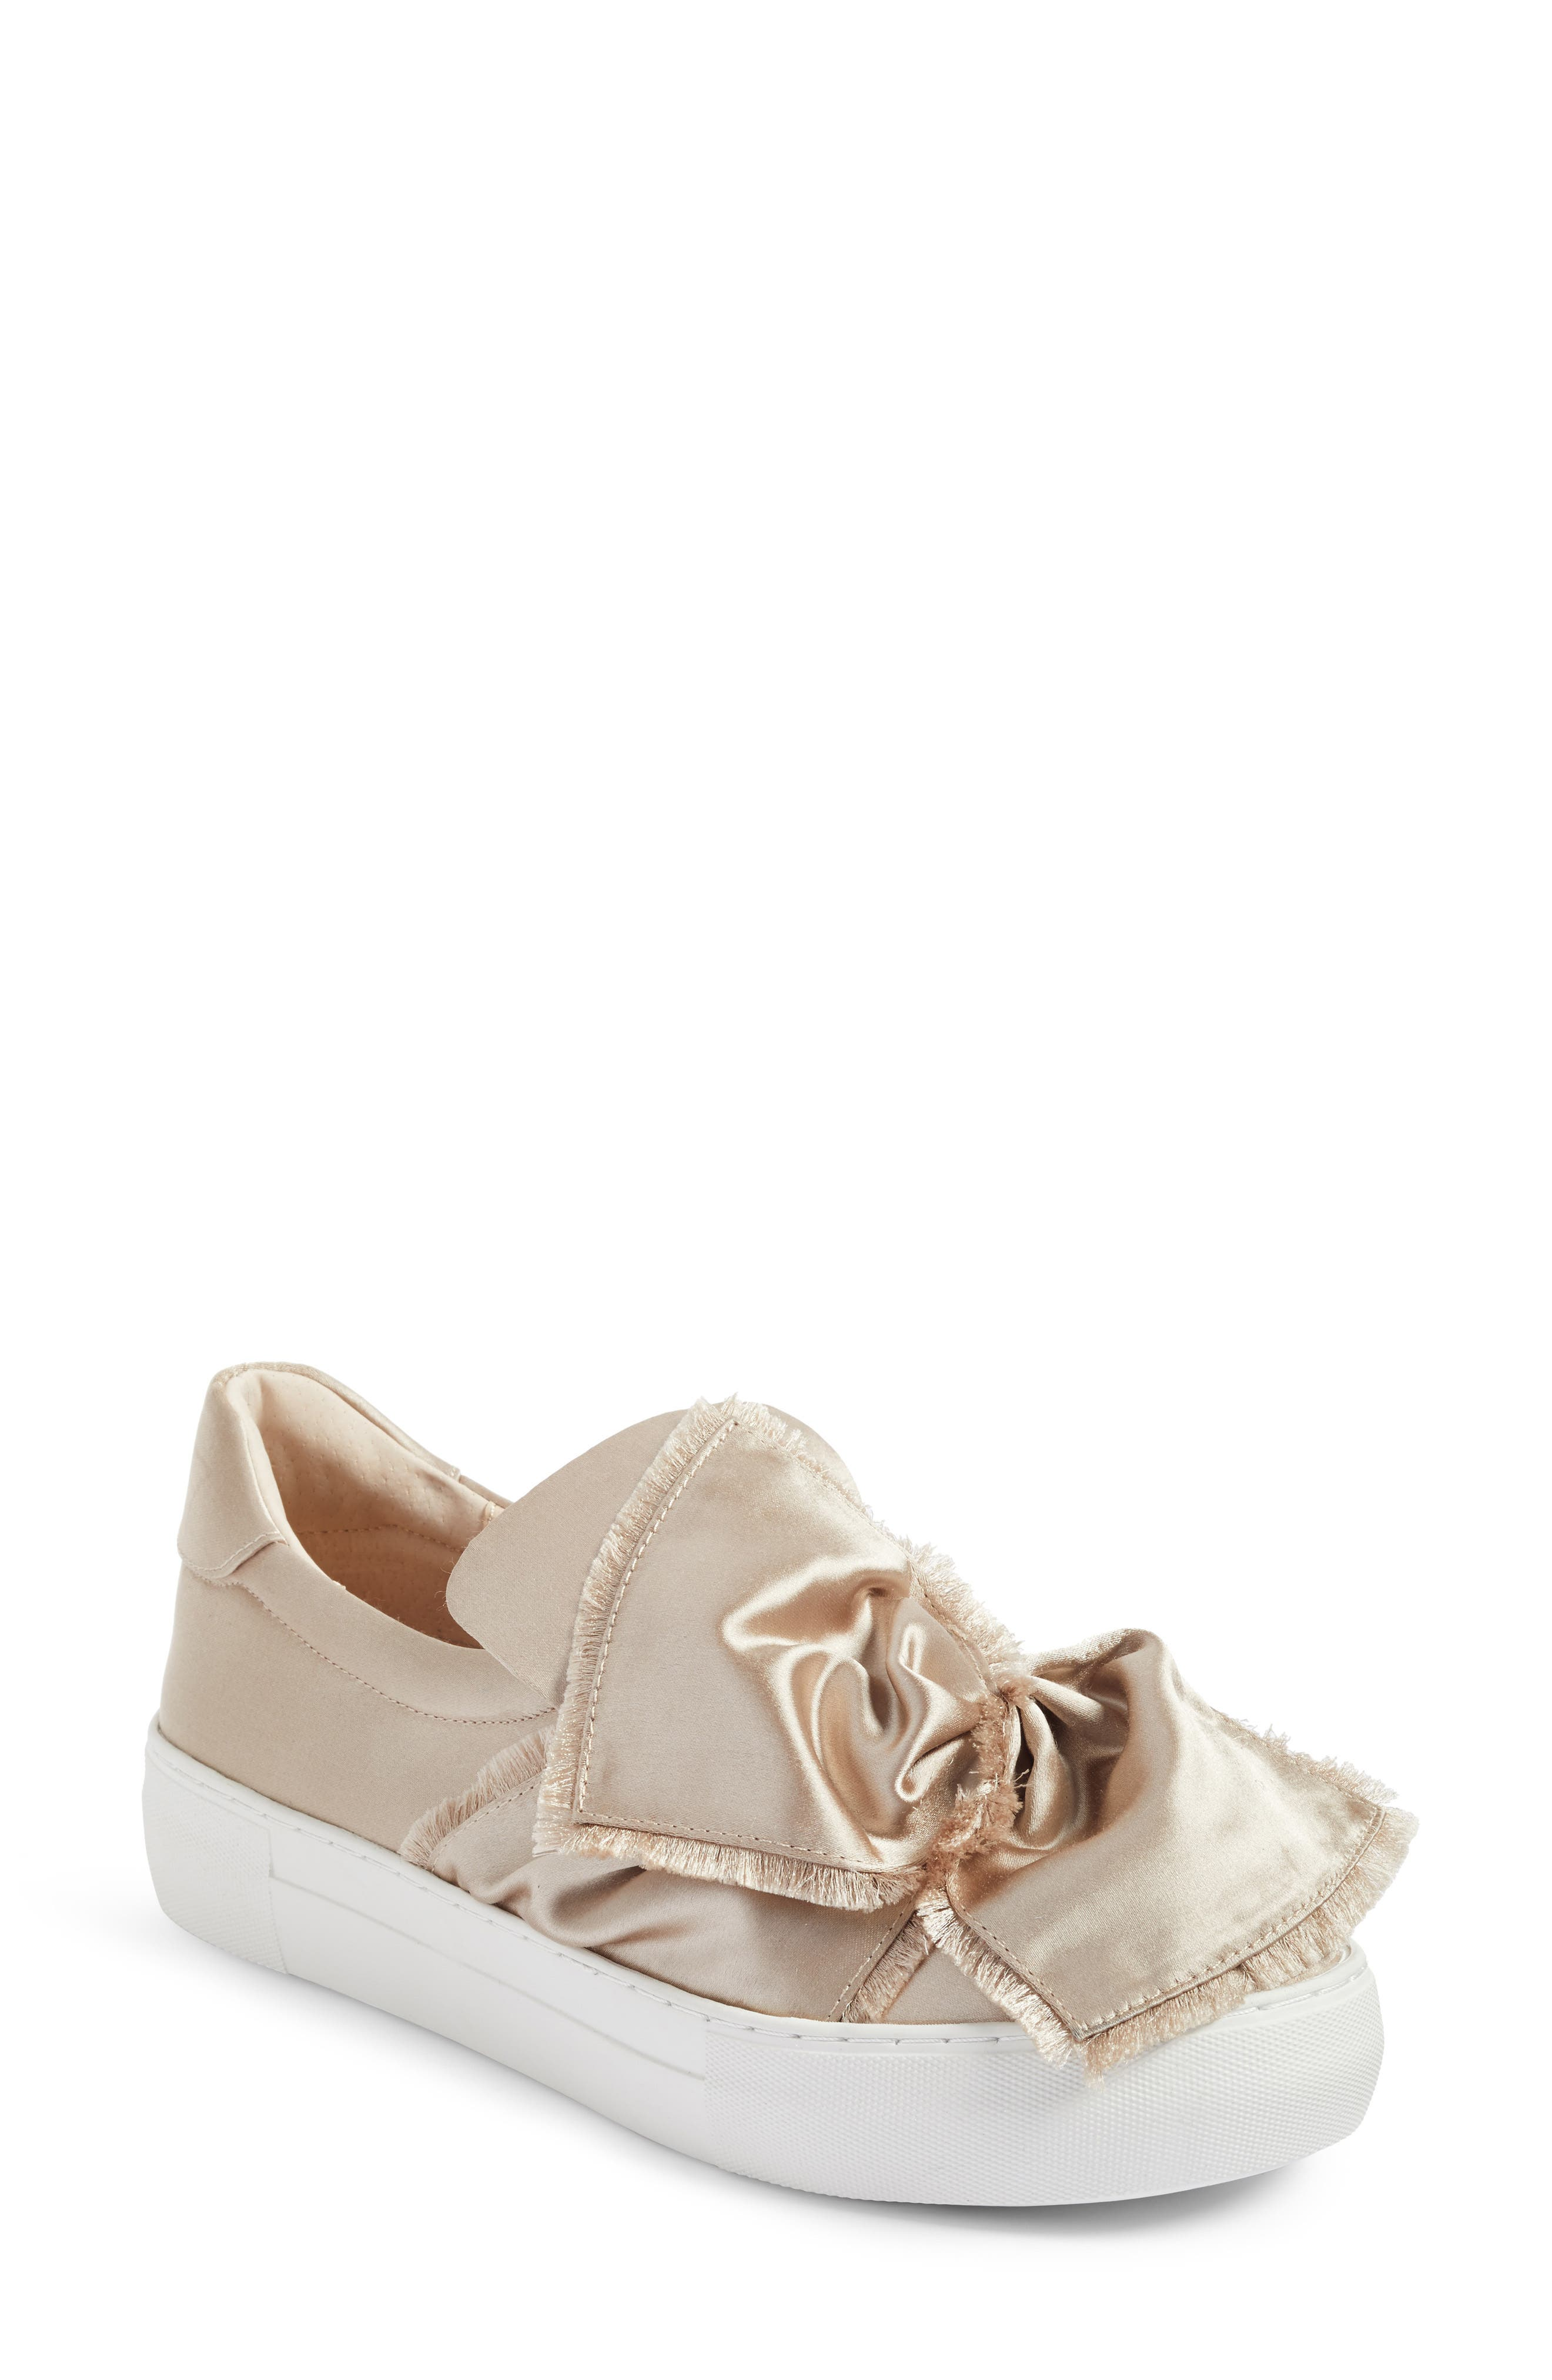 Azzura Bow Slip-On Sneaker,                             Main thumbnail 1, color,                             Champagne Fabric